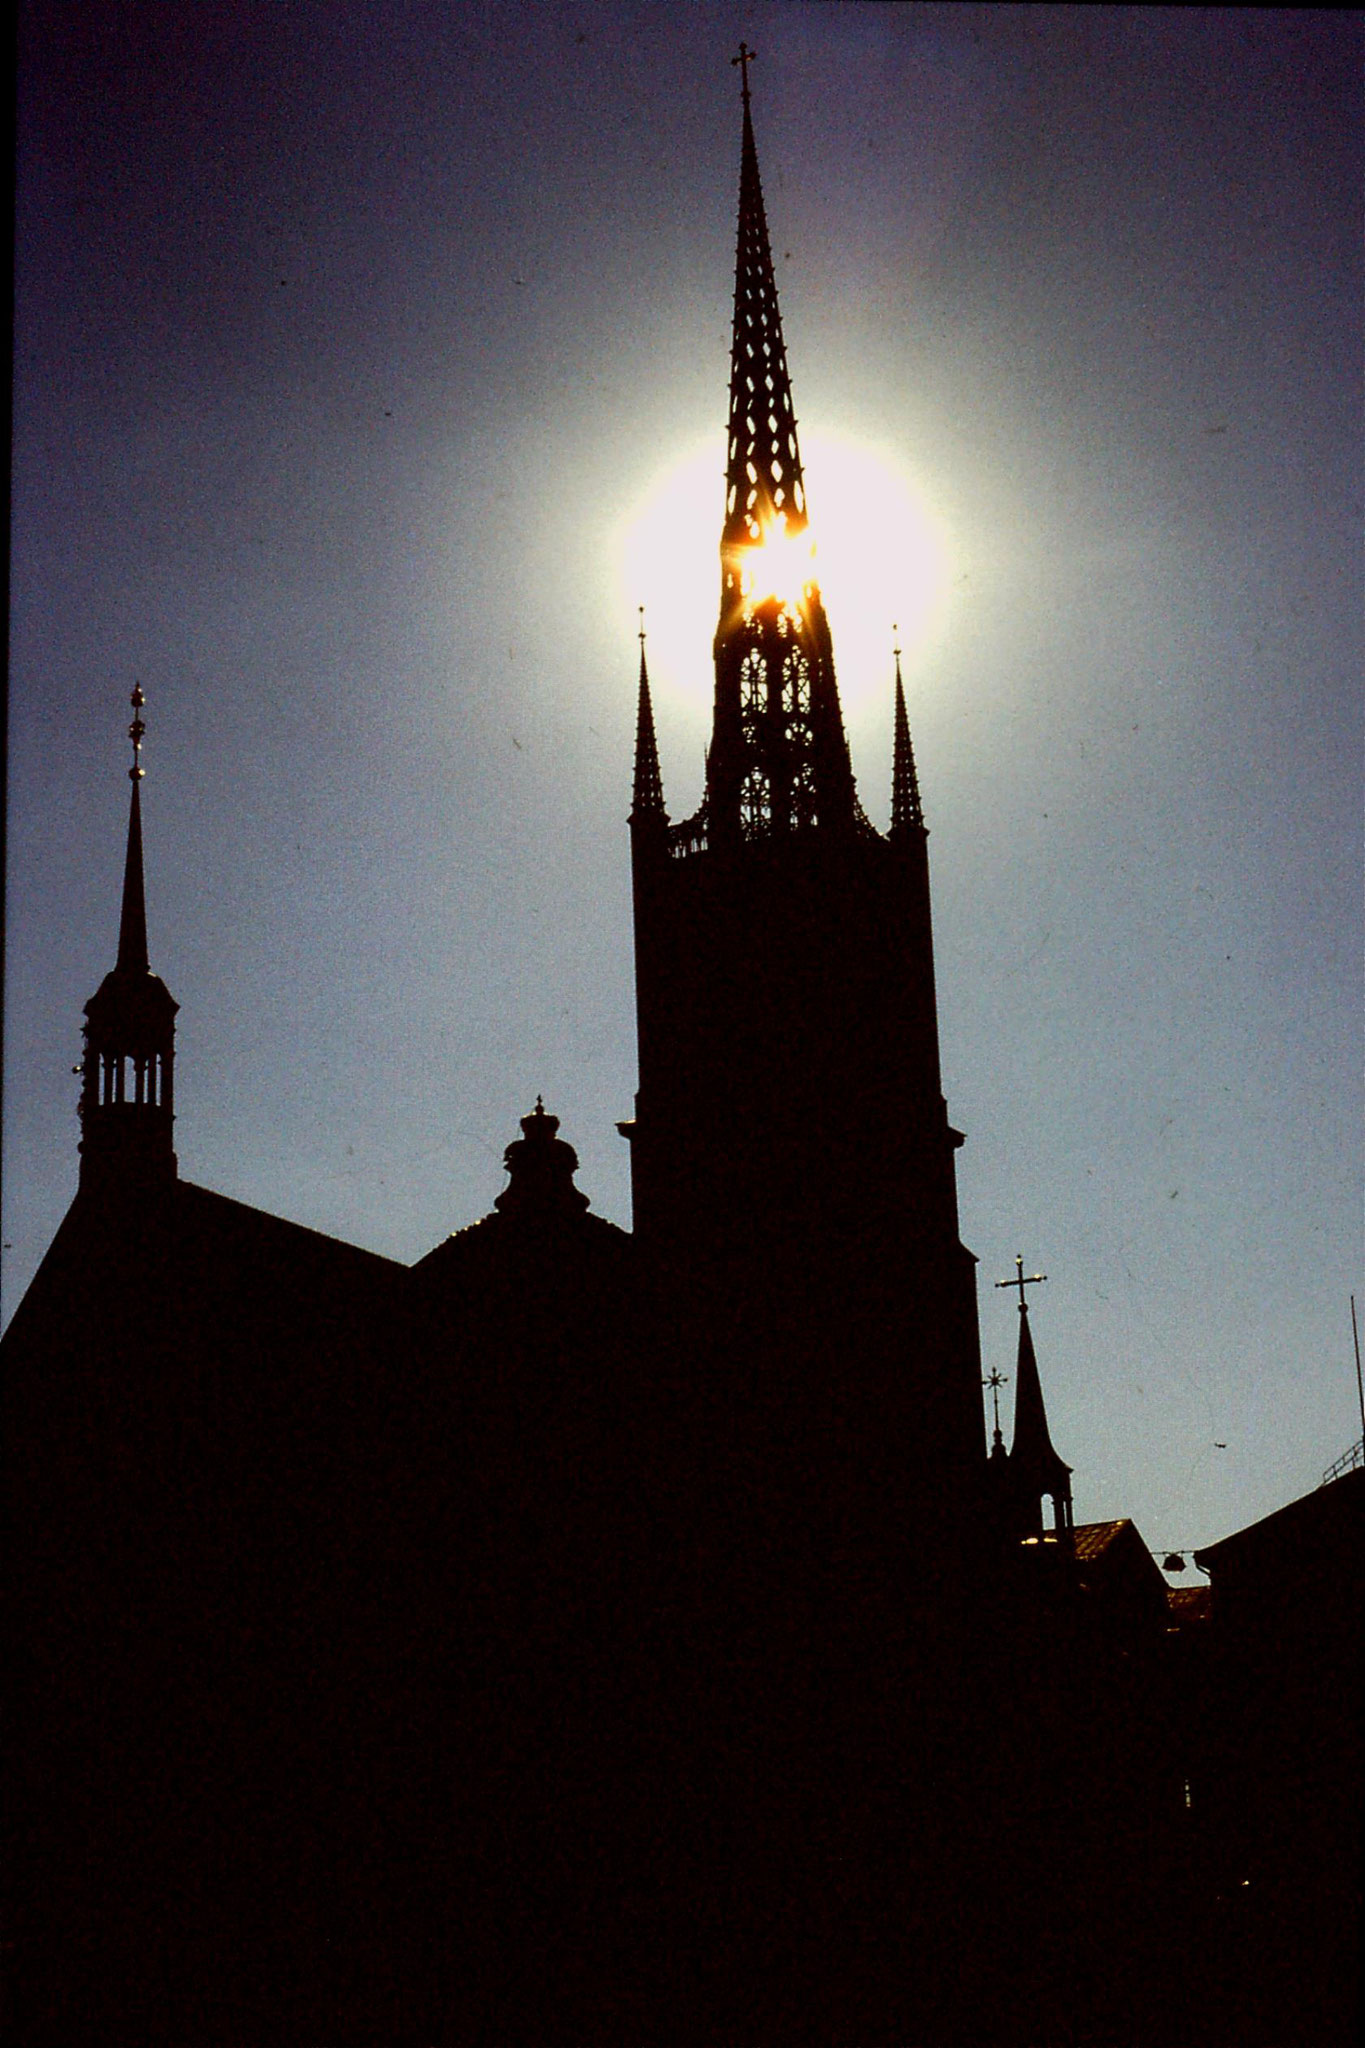 8/9/1988: 36: Knights church